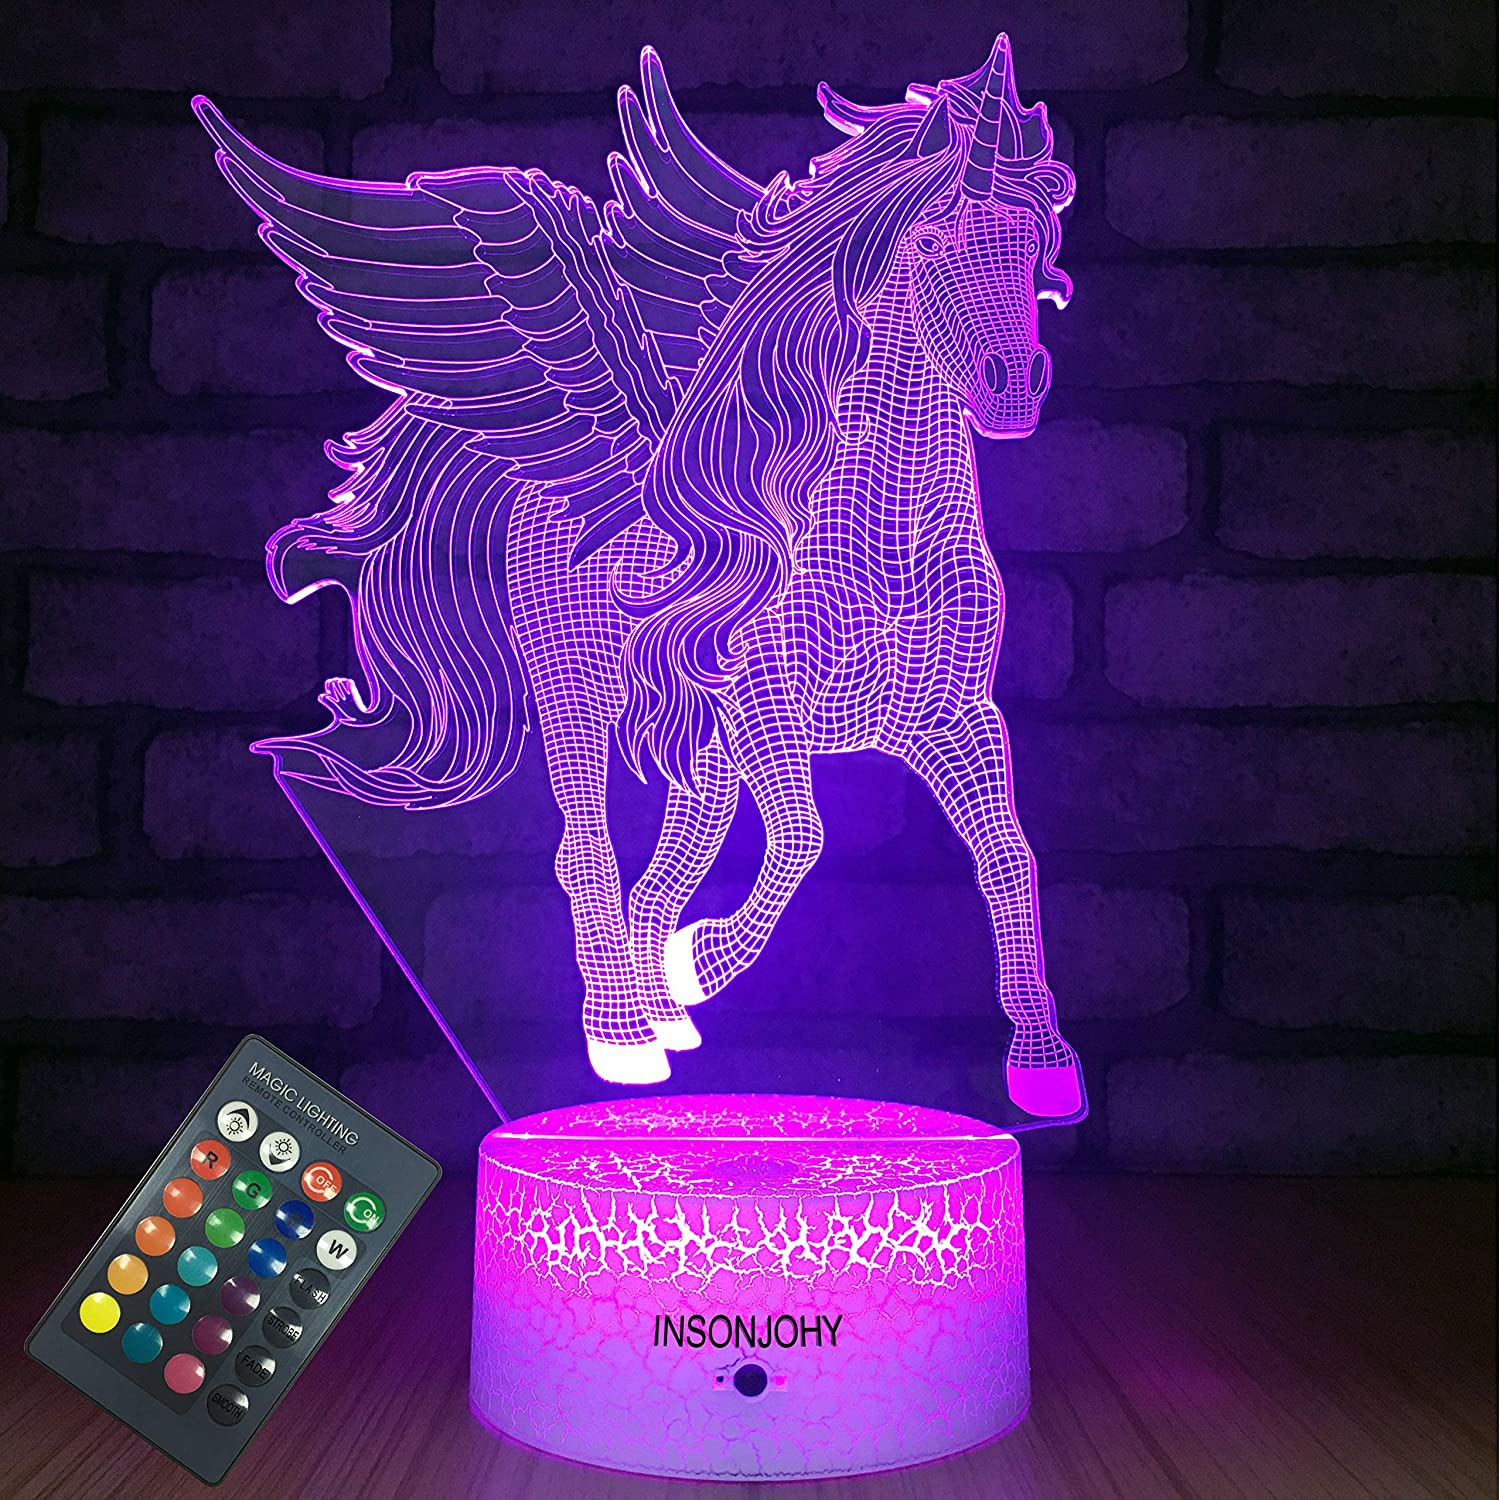 INSONJOHY Unicorn Gifts Night Light for Kids with Remote & Smart Touch 7 Colors + 16 Colors Changing Dimmable Unicorn Toys 6 8 3 6 5 9 4 10 Year Old Girl Boy Gifts (Unicorn)